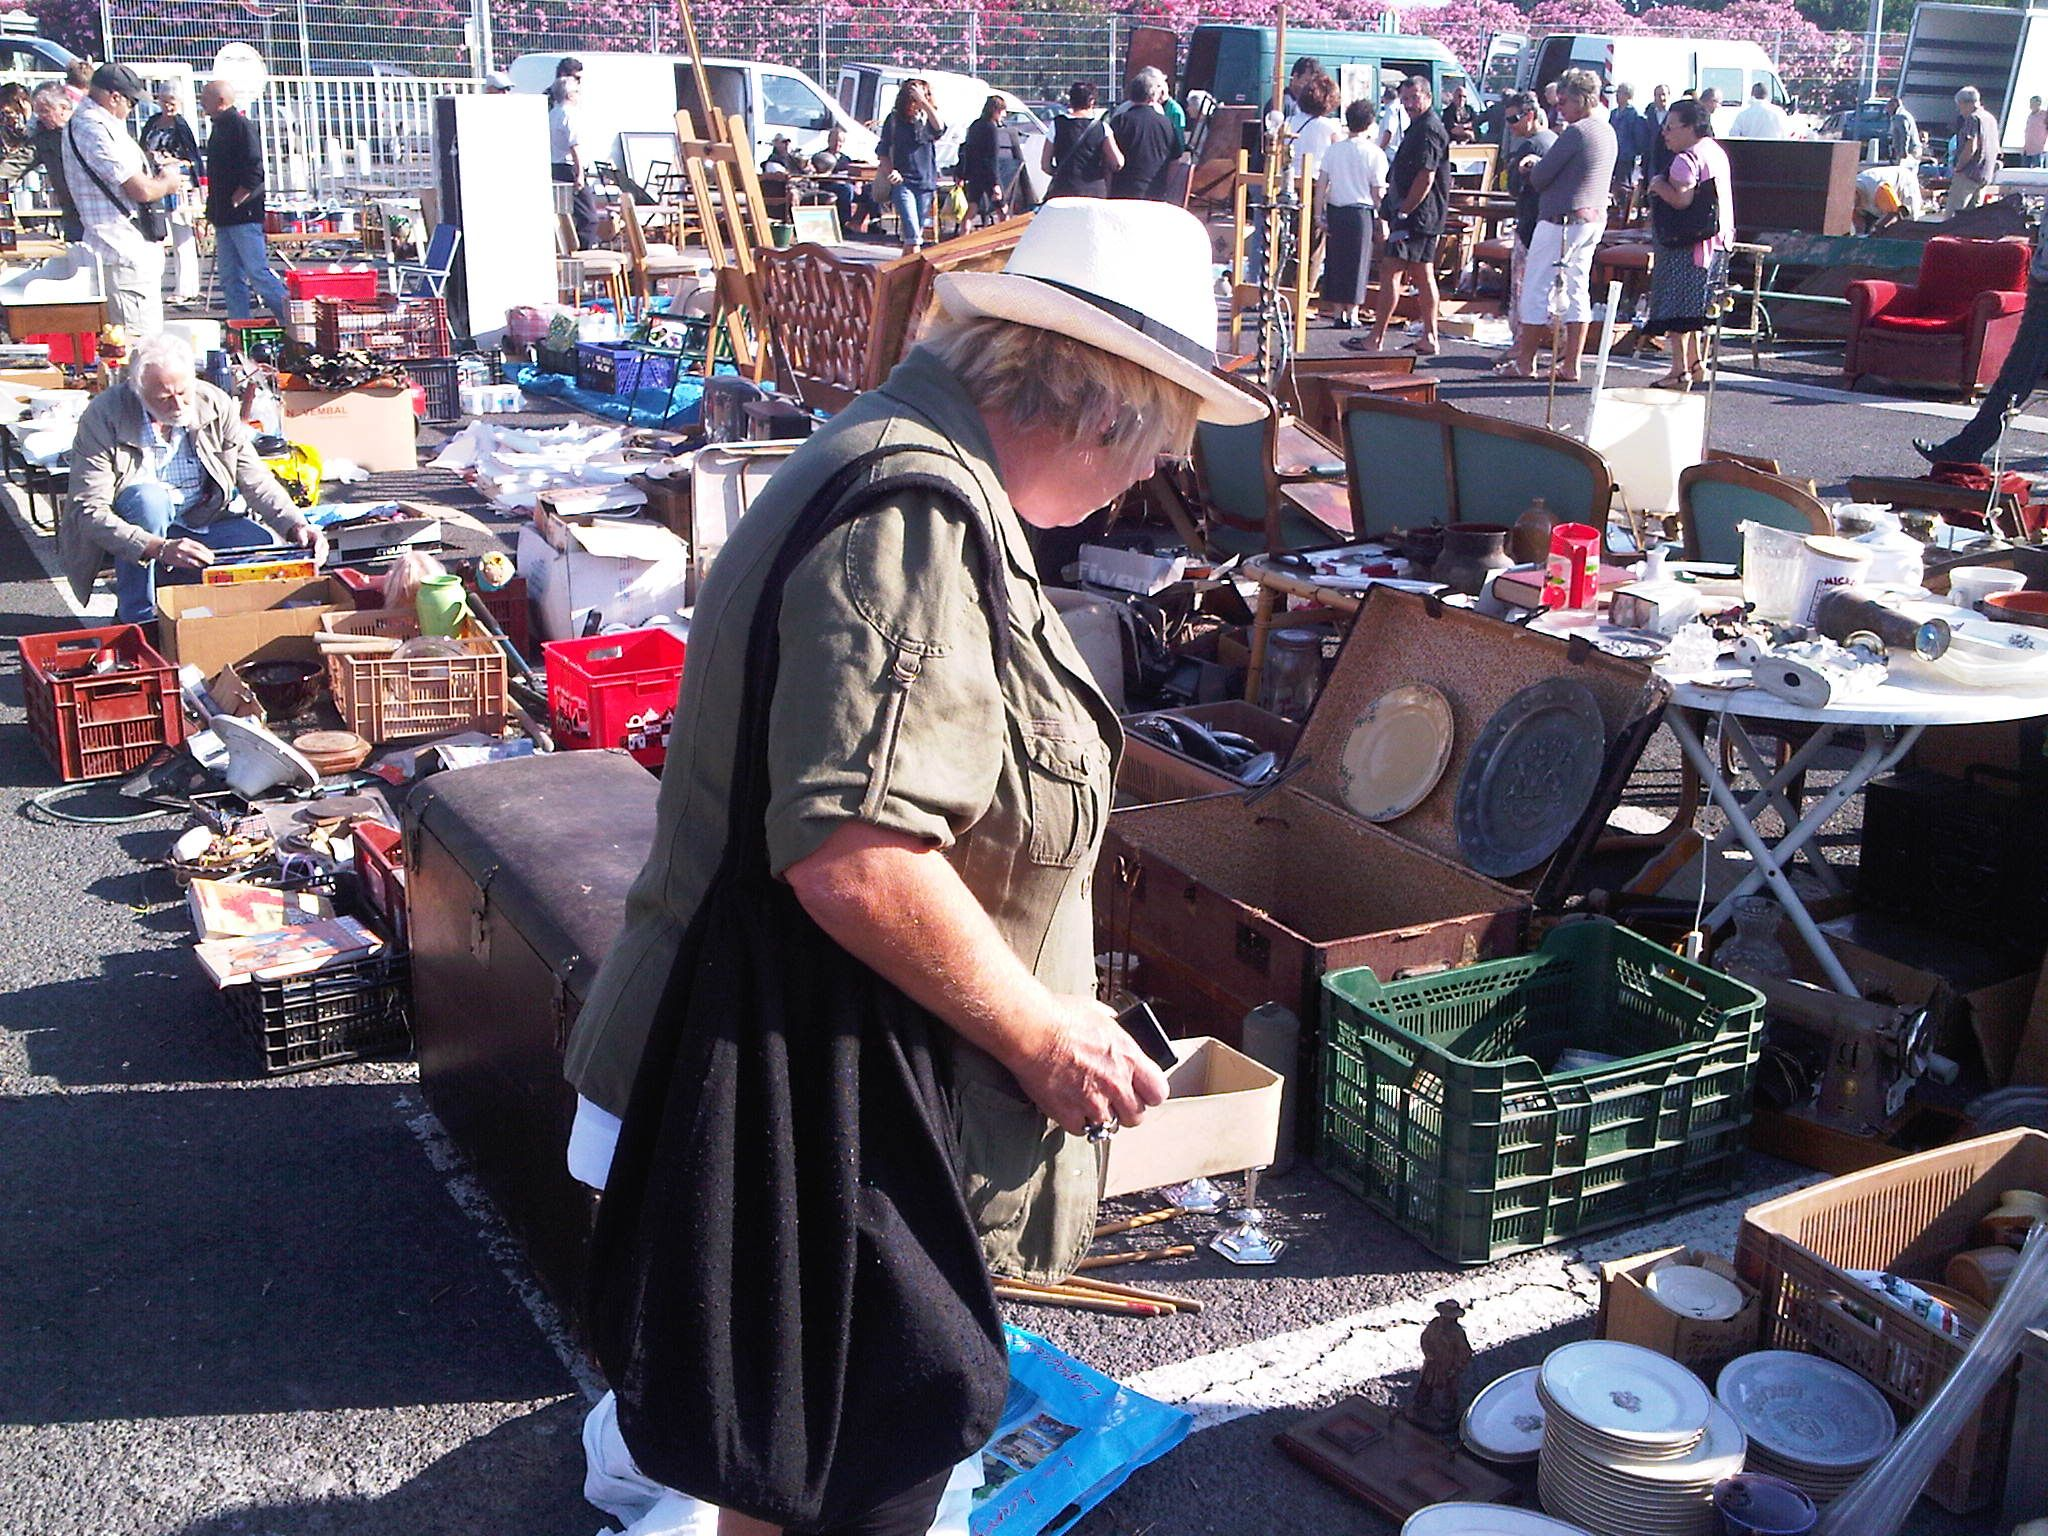 Scouring the flea market, an idea for a new business?